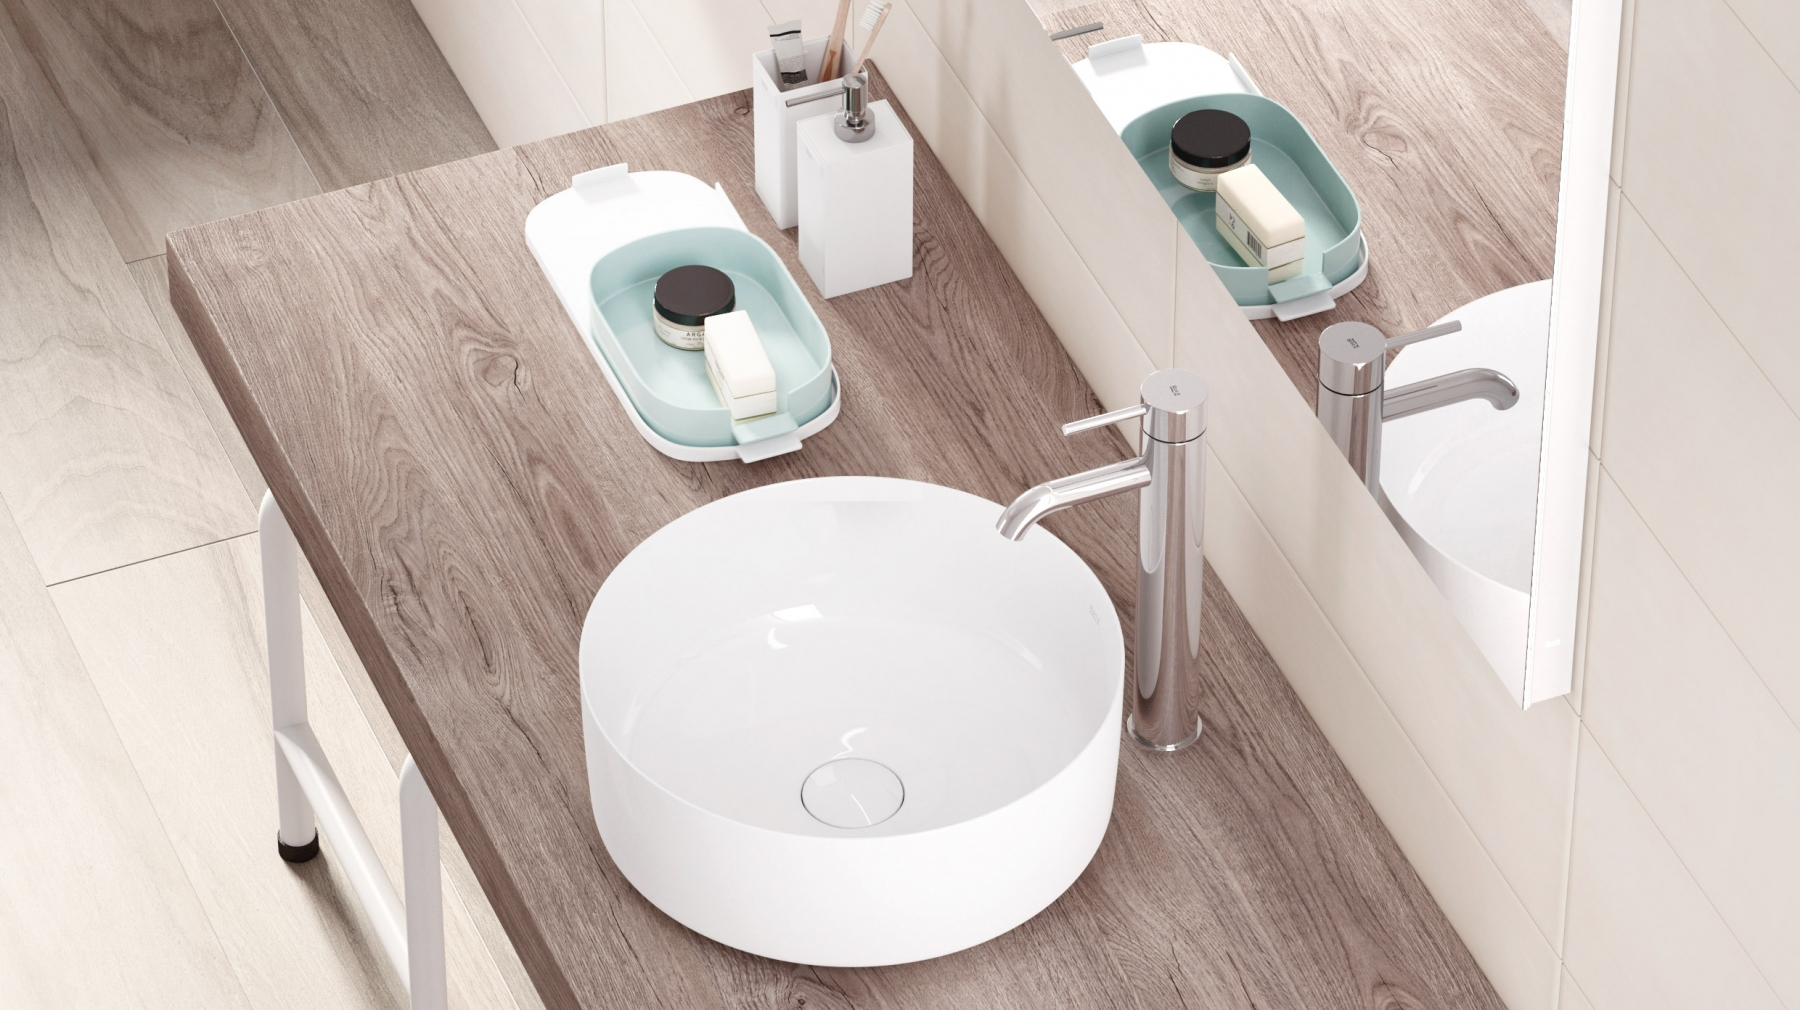 Inspira basin by Roca manufactured in Fineceramic®